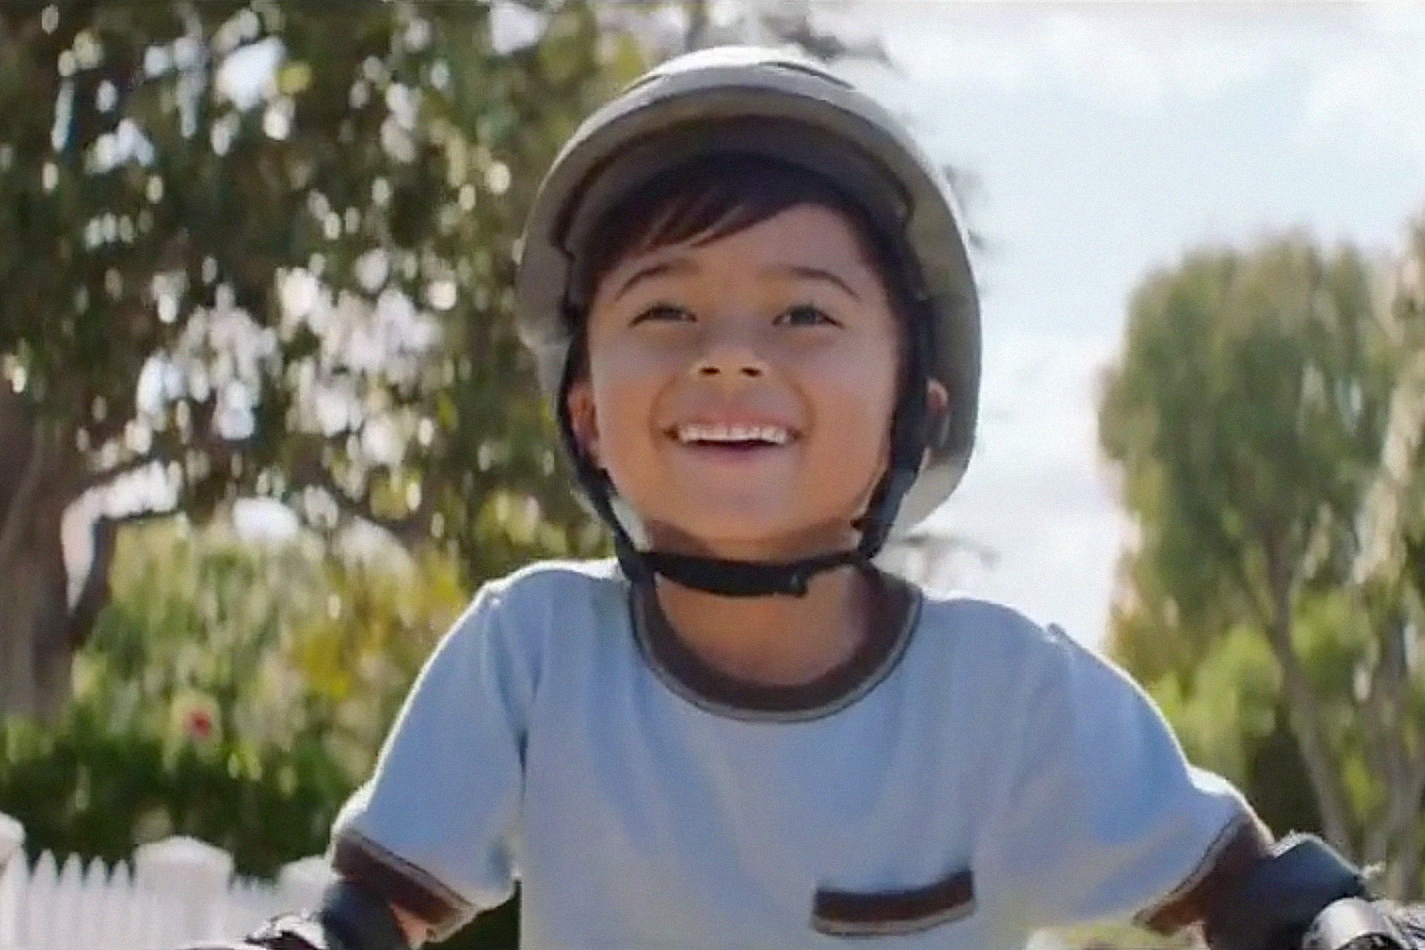 Watch the newest commercials on TV from JC Penney, McDonald's, Freeway Insurance and more